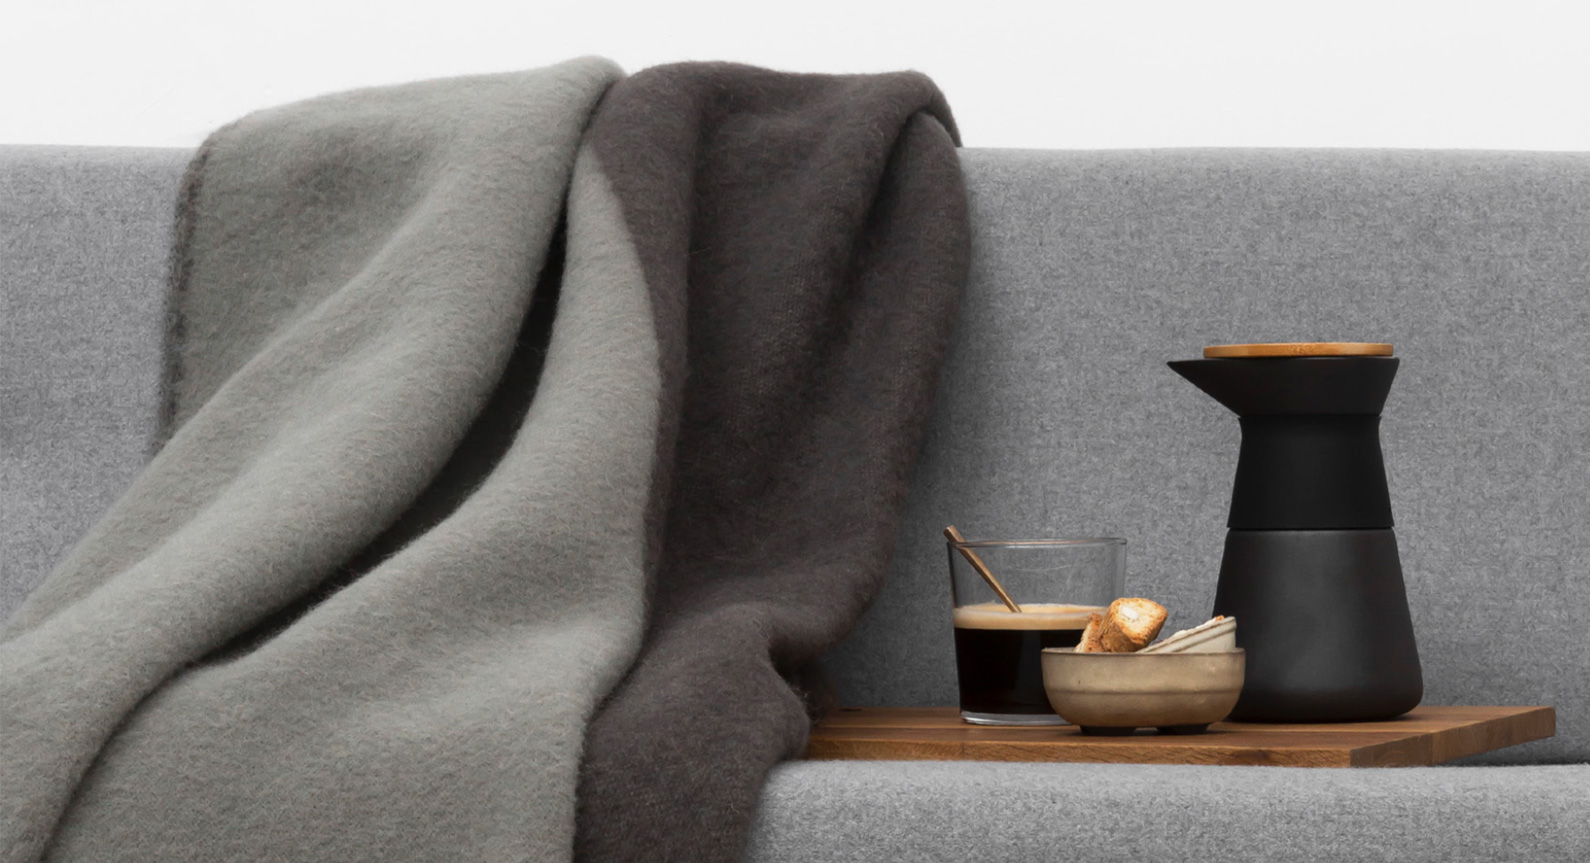 Forestrywool's Latest Collection Of Blankets Belong In Your Home